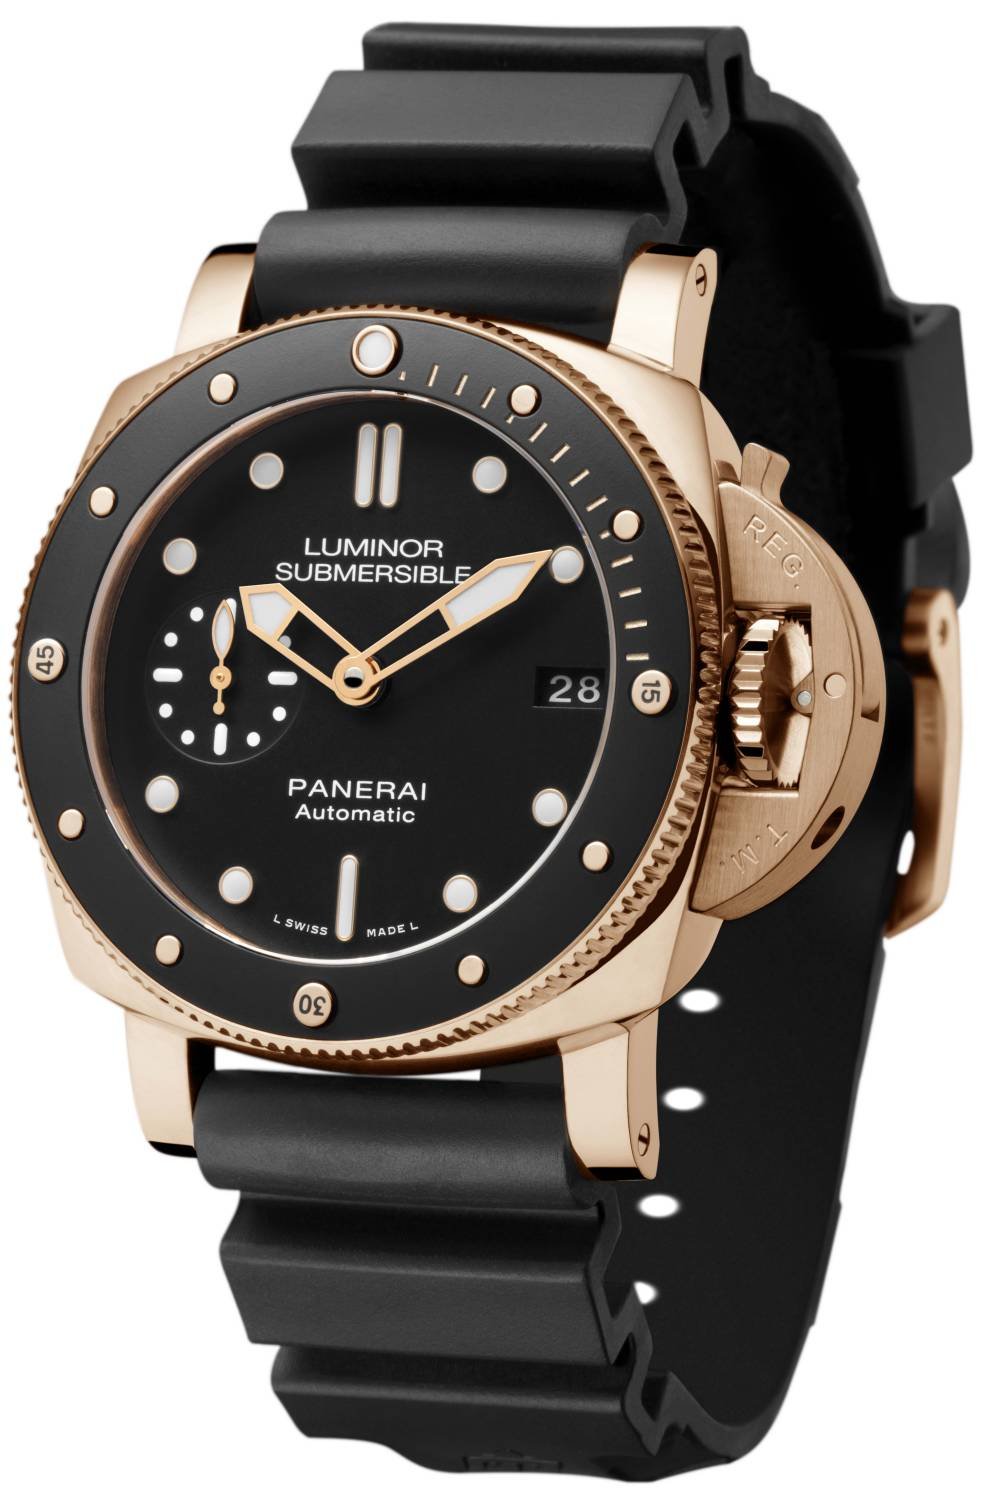 Panerai-Luminor-Submersible-1950-PAM00684-1.jpg